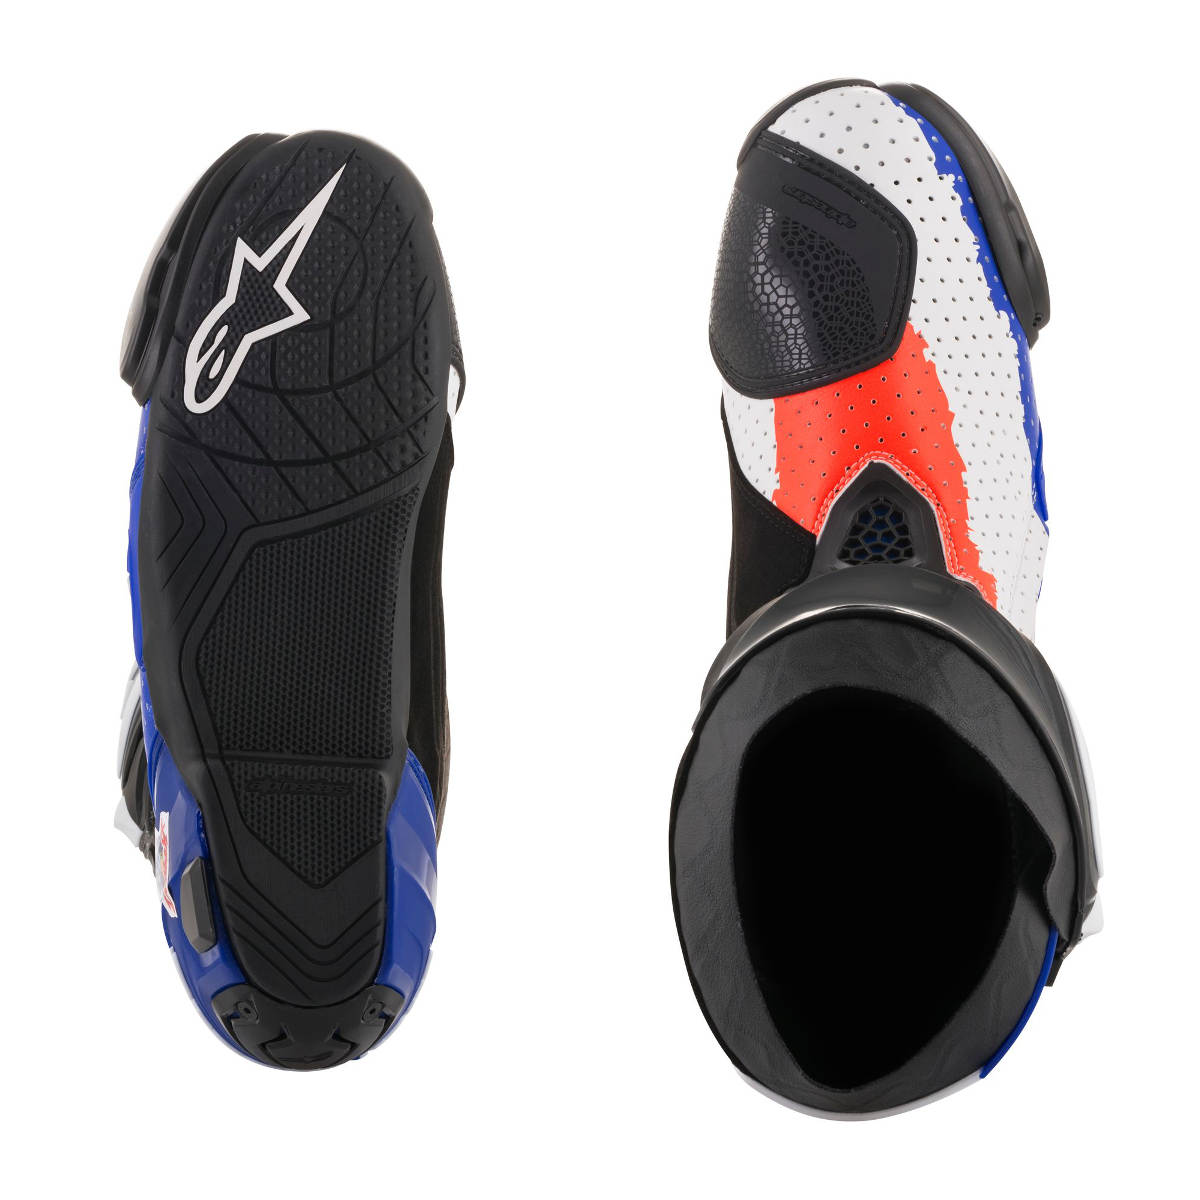 2018 Limited Edition Mick Doohan Alpinestars Supertech R Race Replica Boots Top and Bottom